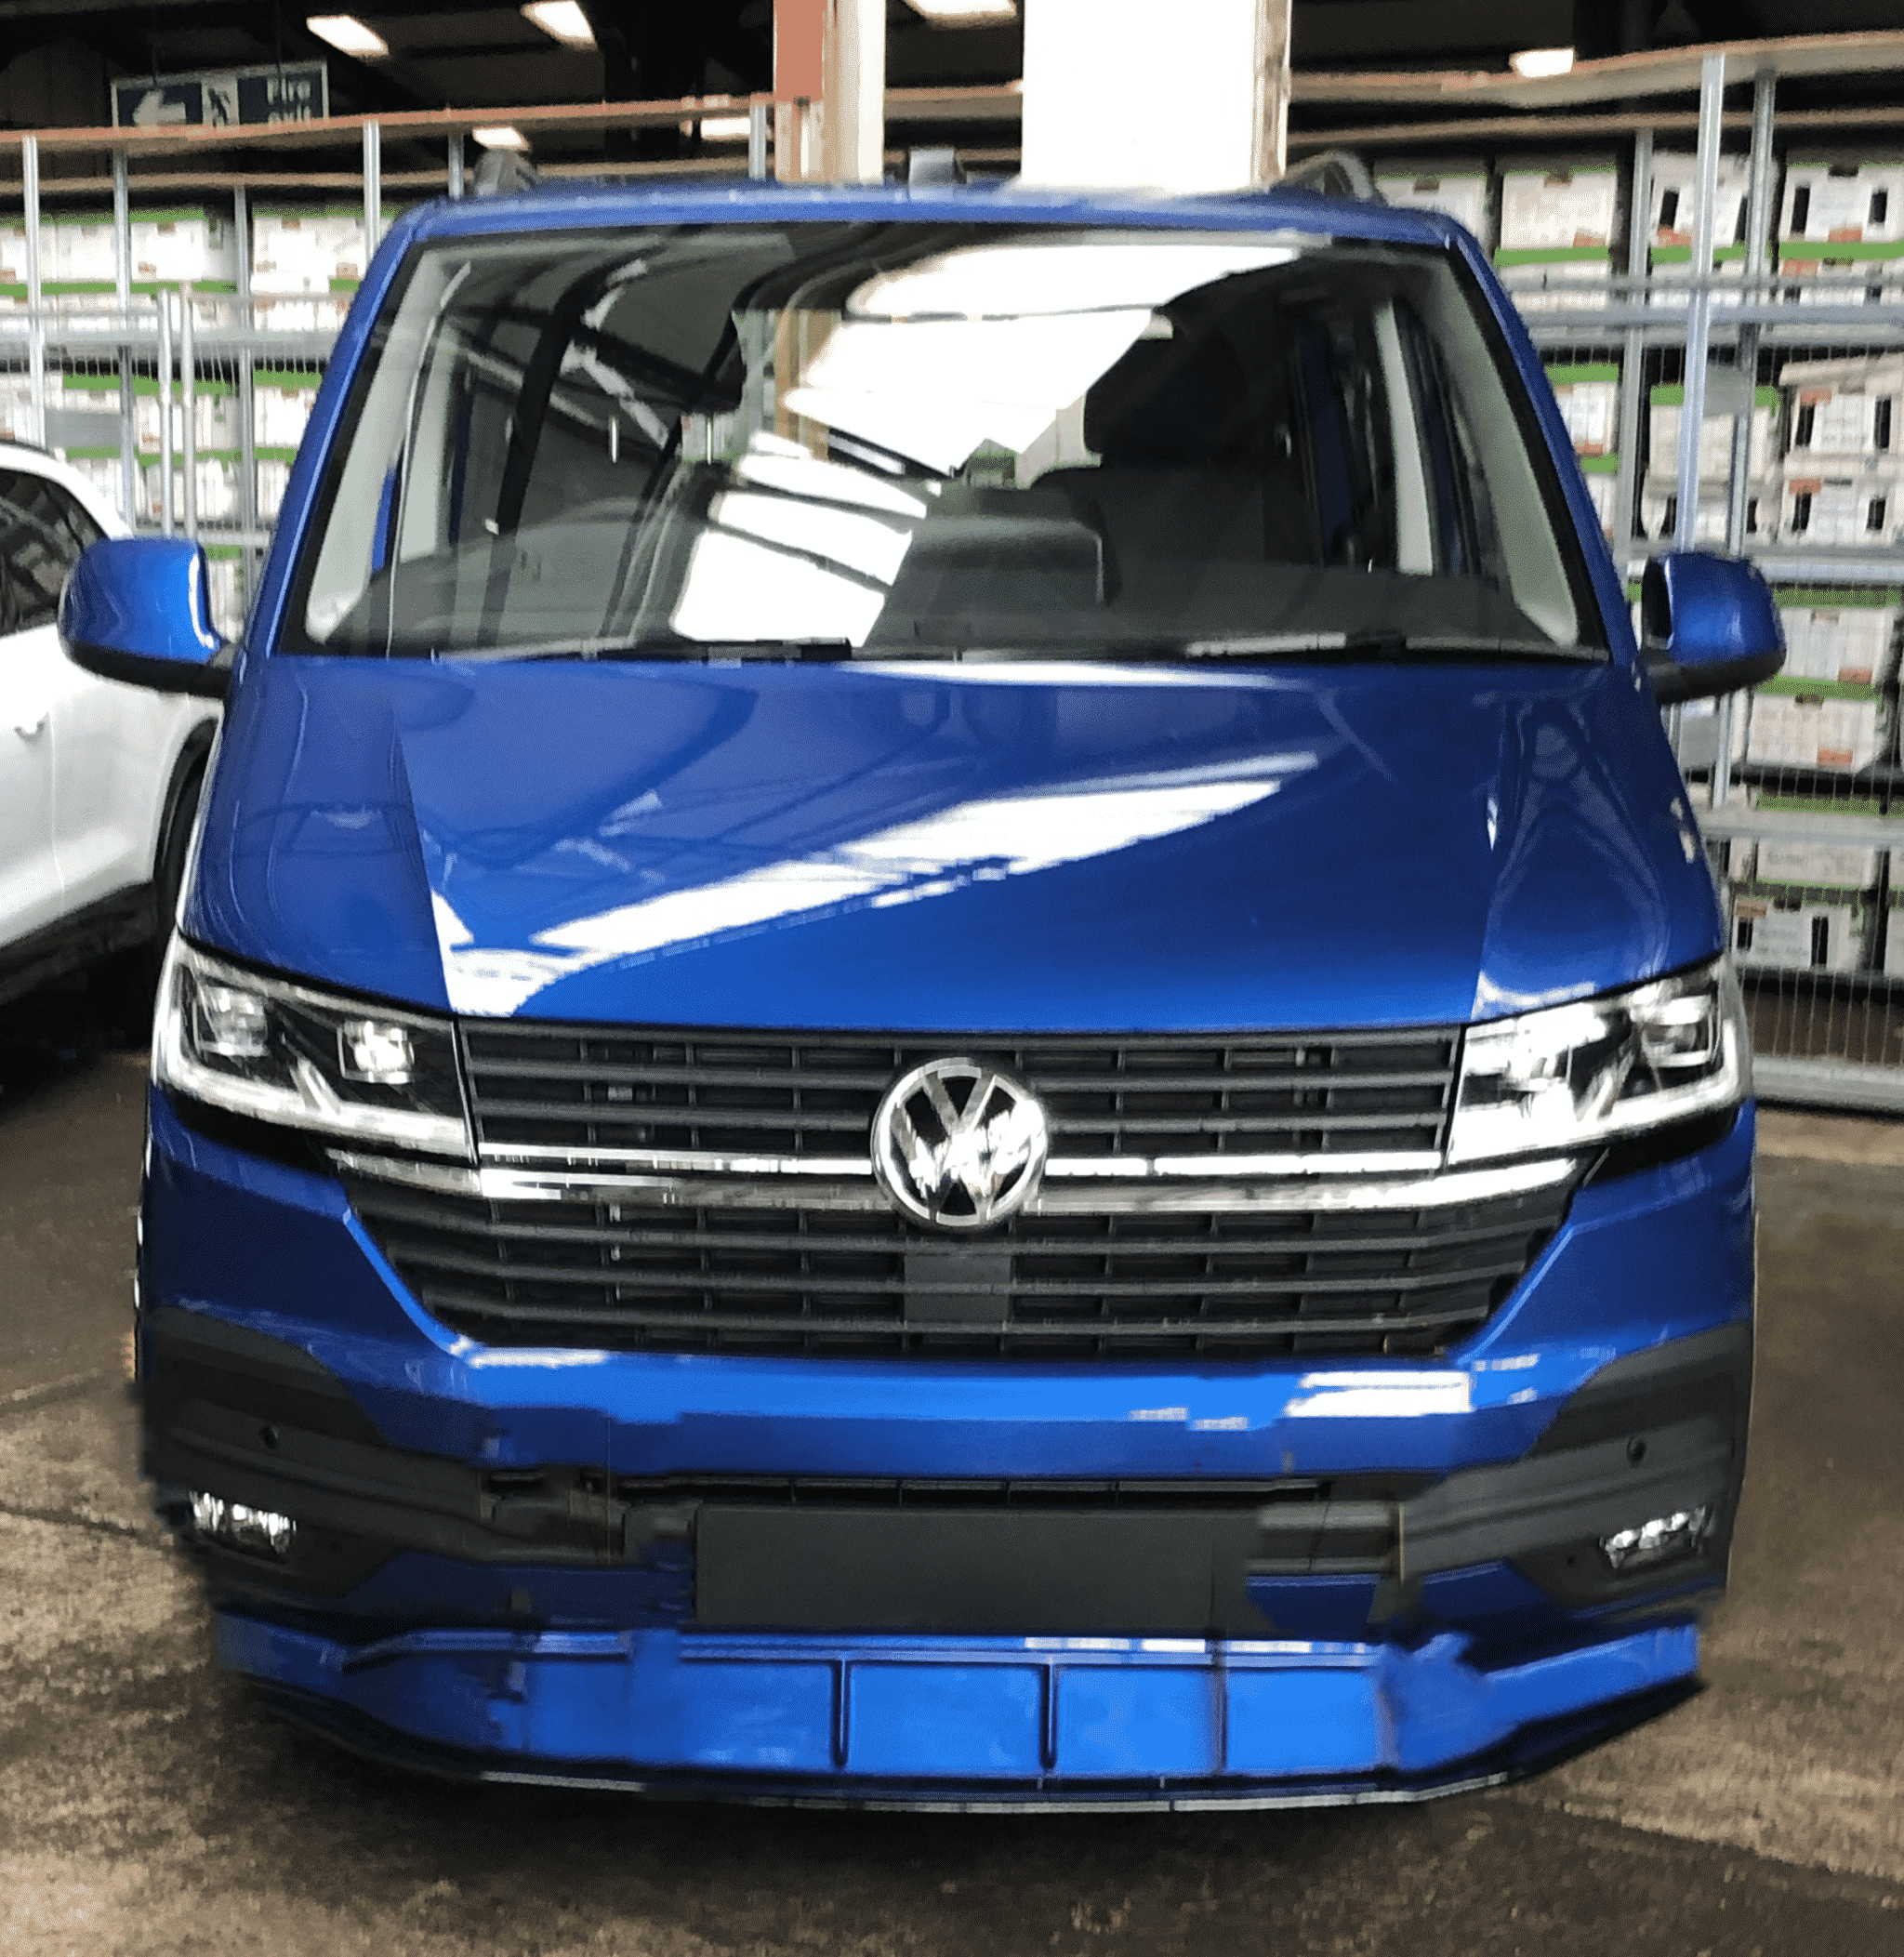 VW-Transporter-Sportline-WASP-Blue-Swiss-Vans-2020-